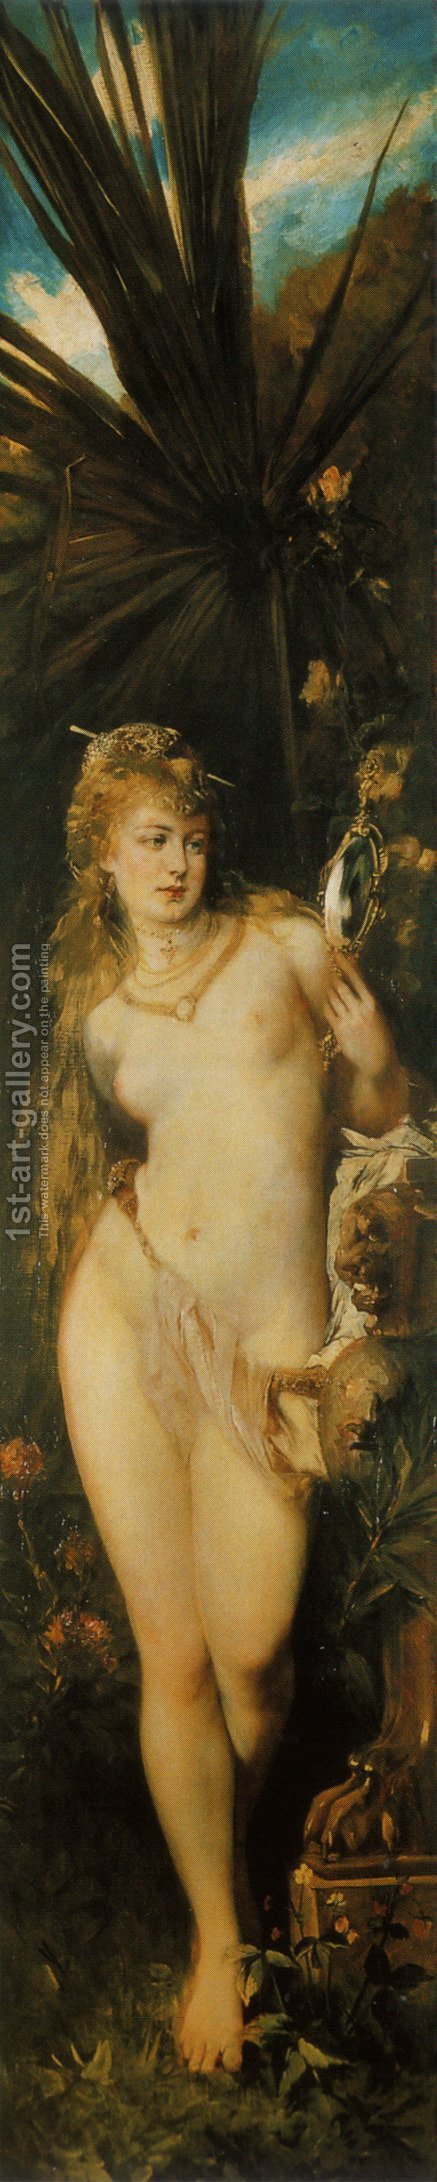 Die Fünf Sinne: Gesicht (The Five Senses: Seeing) by Hans Makart - Reproduction Oil Painting